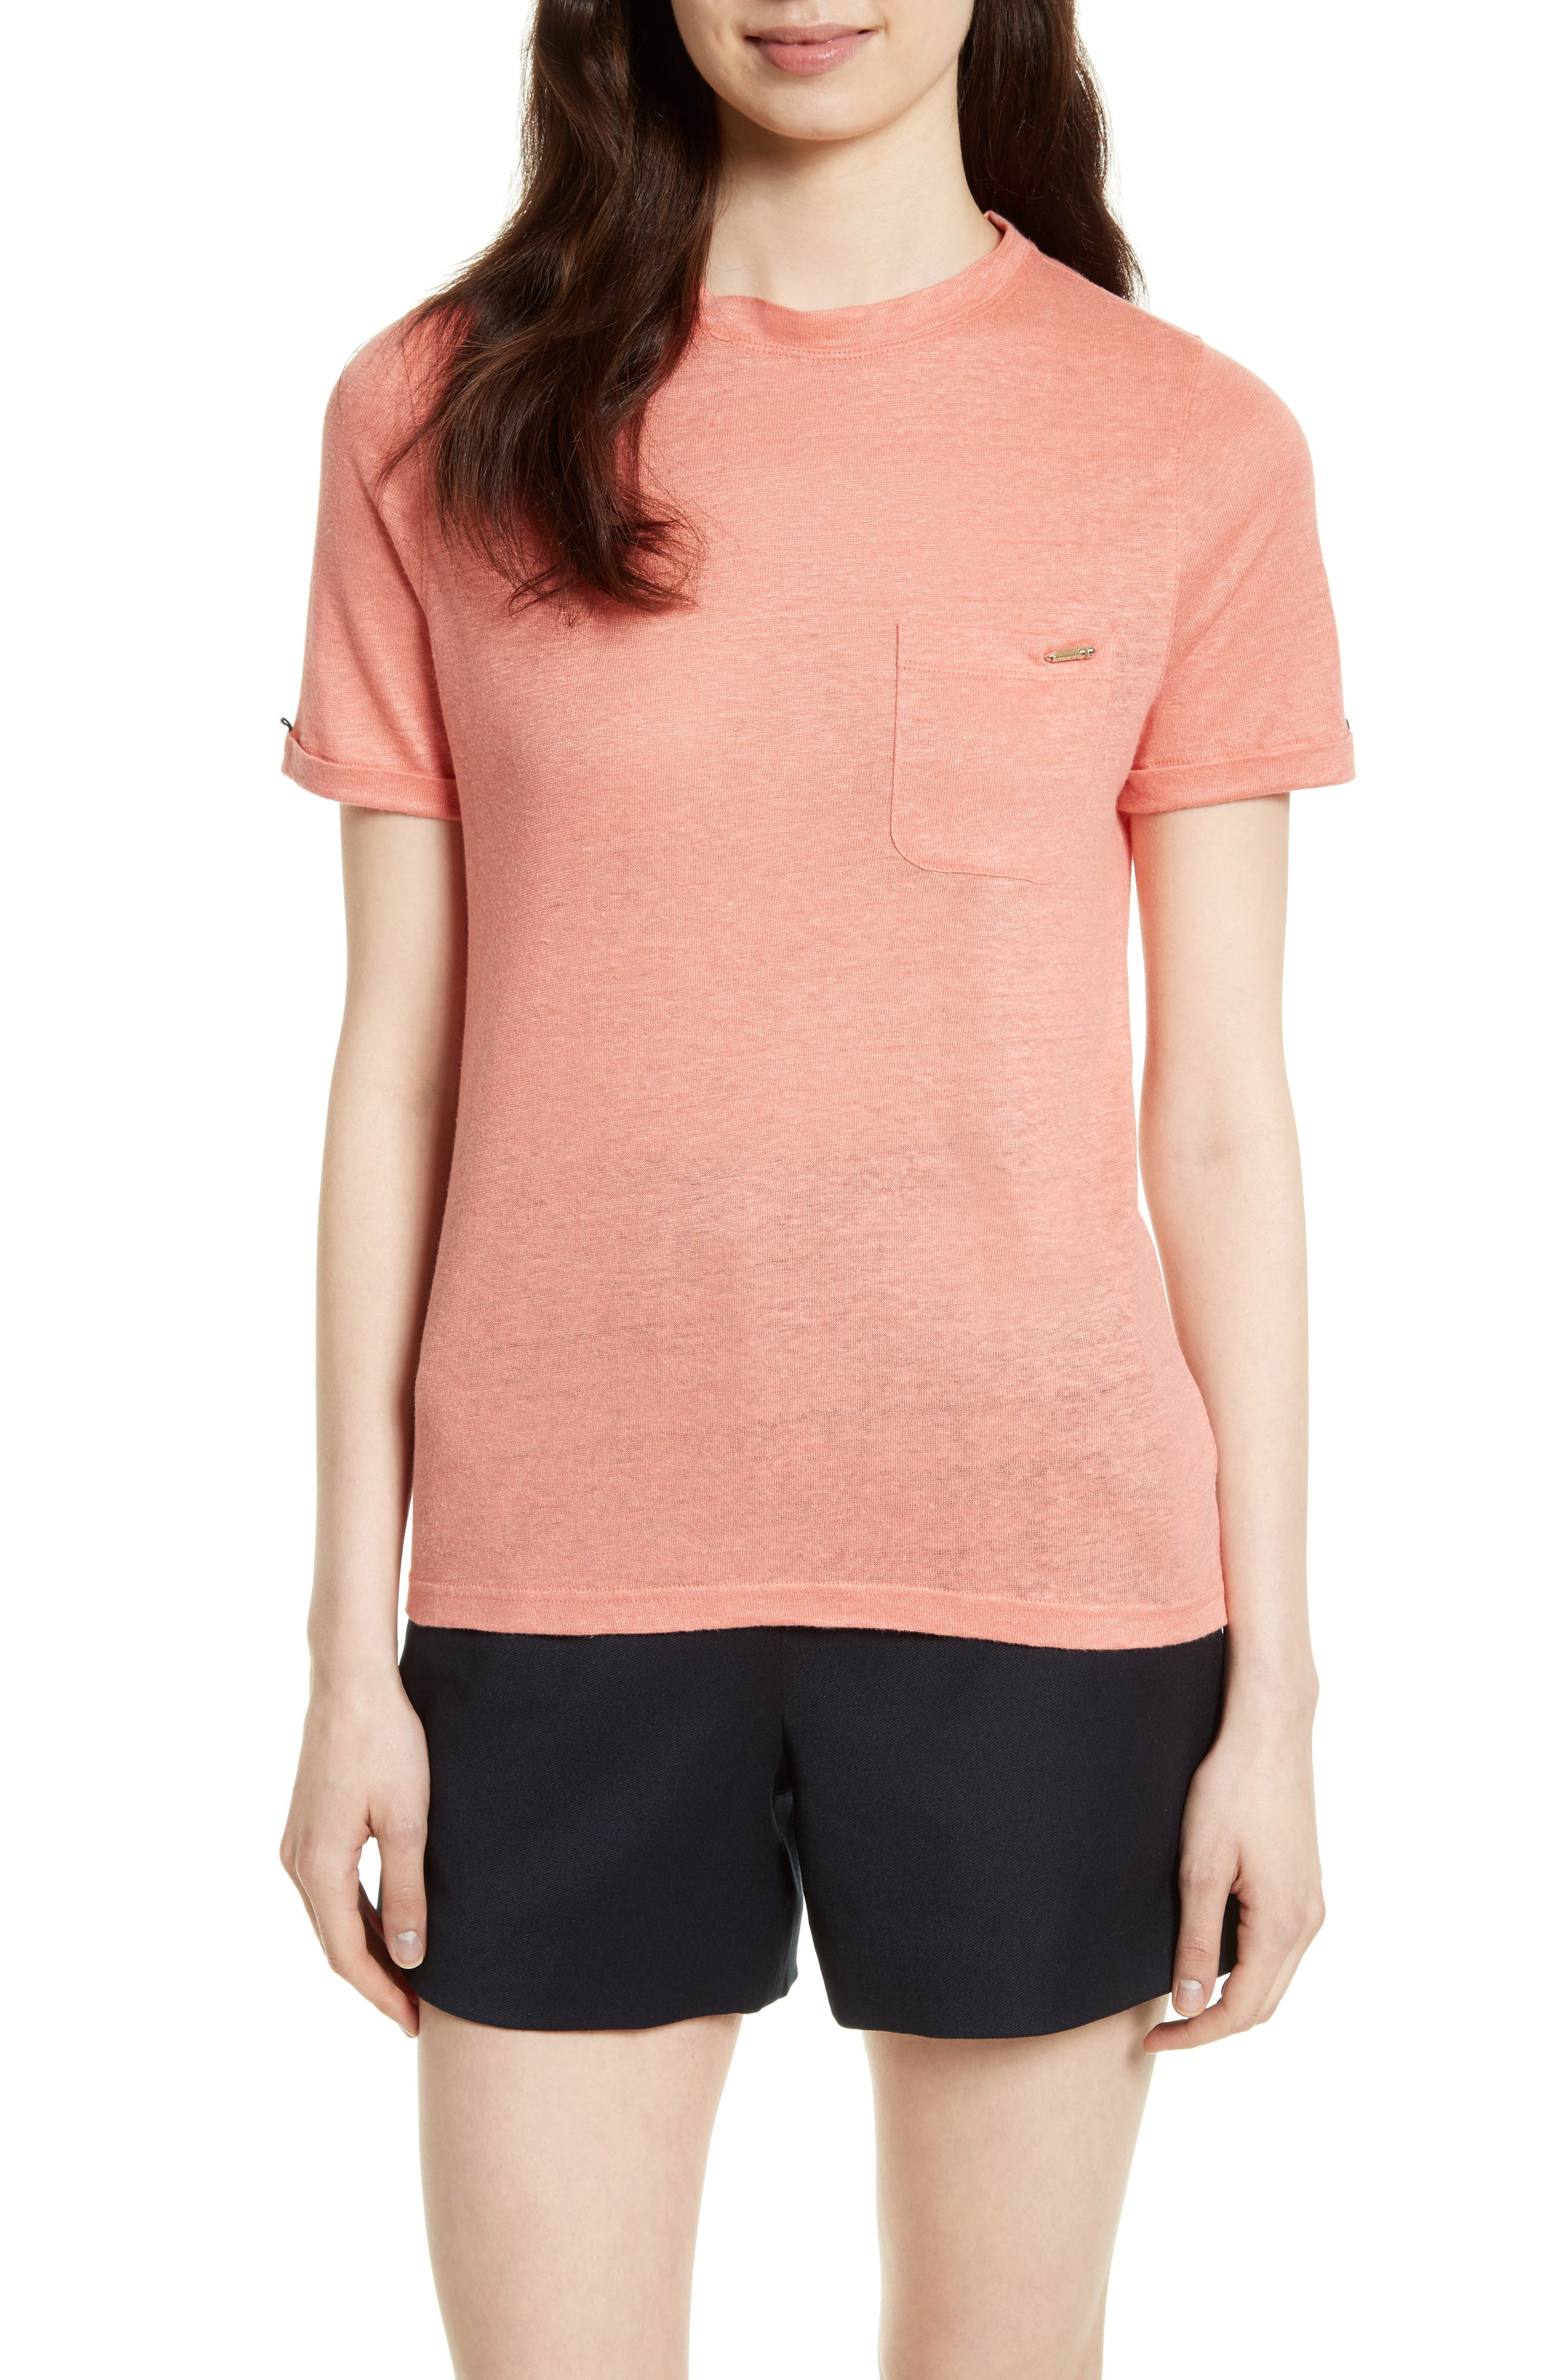 Harlaa Square Cut Linen Tee,                         Main,                         color, 950